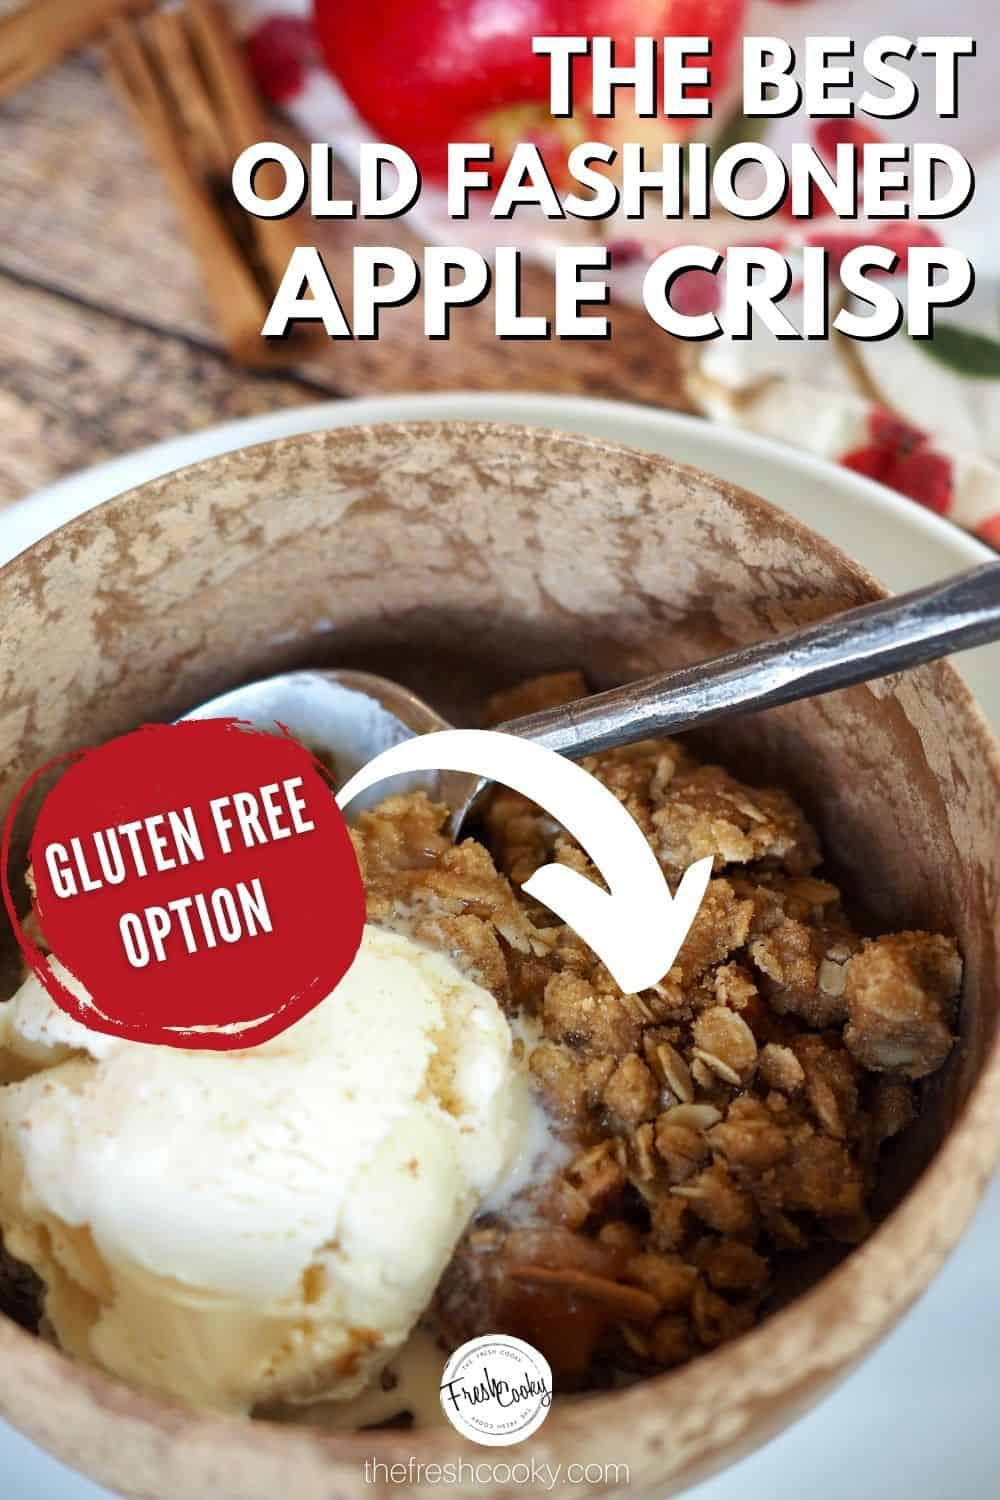 The best easy old fashioned apple crisp, an old family recipe that comes together quickly. Simple options to make gluten free and vegan, serve warm with ice cream. A favorite fall apple desert! #thefreshcooky #bestapplecrisp #glutenfree via @thefreshcooky